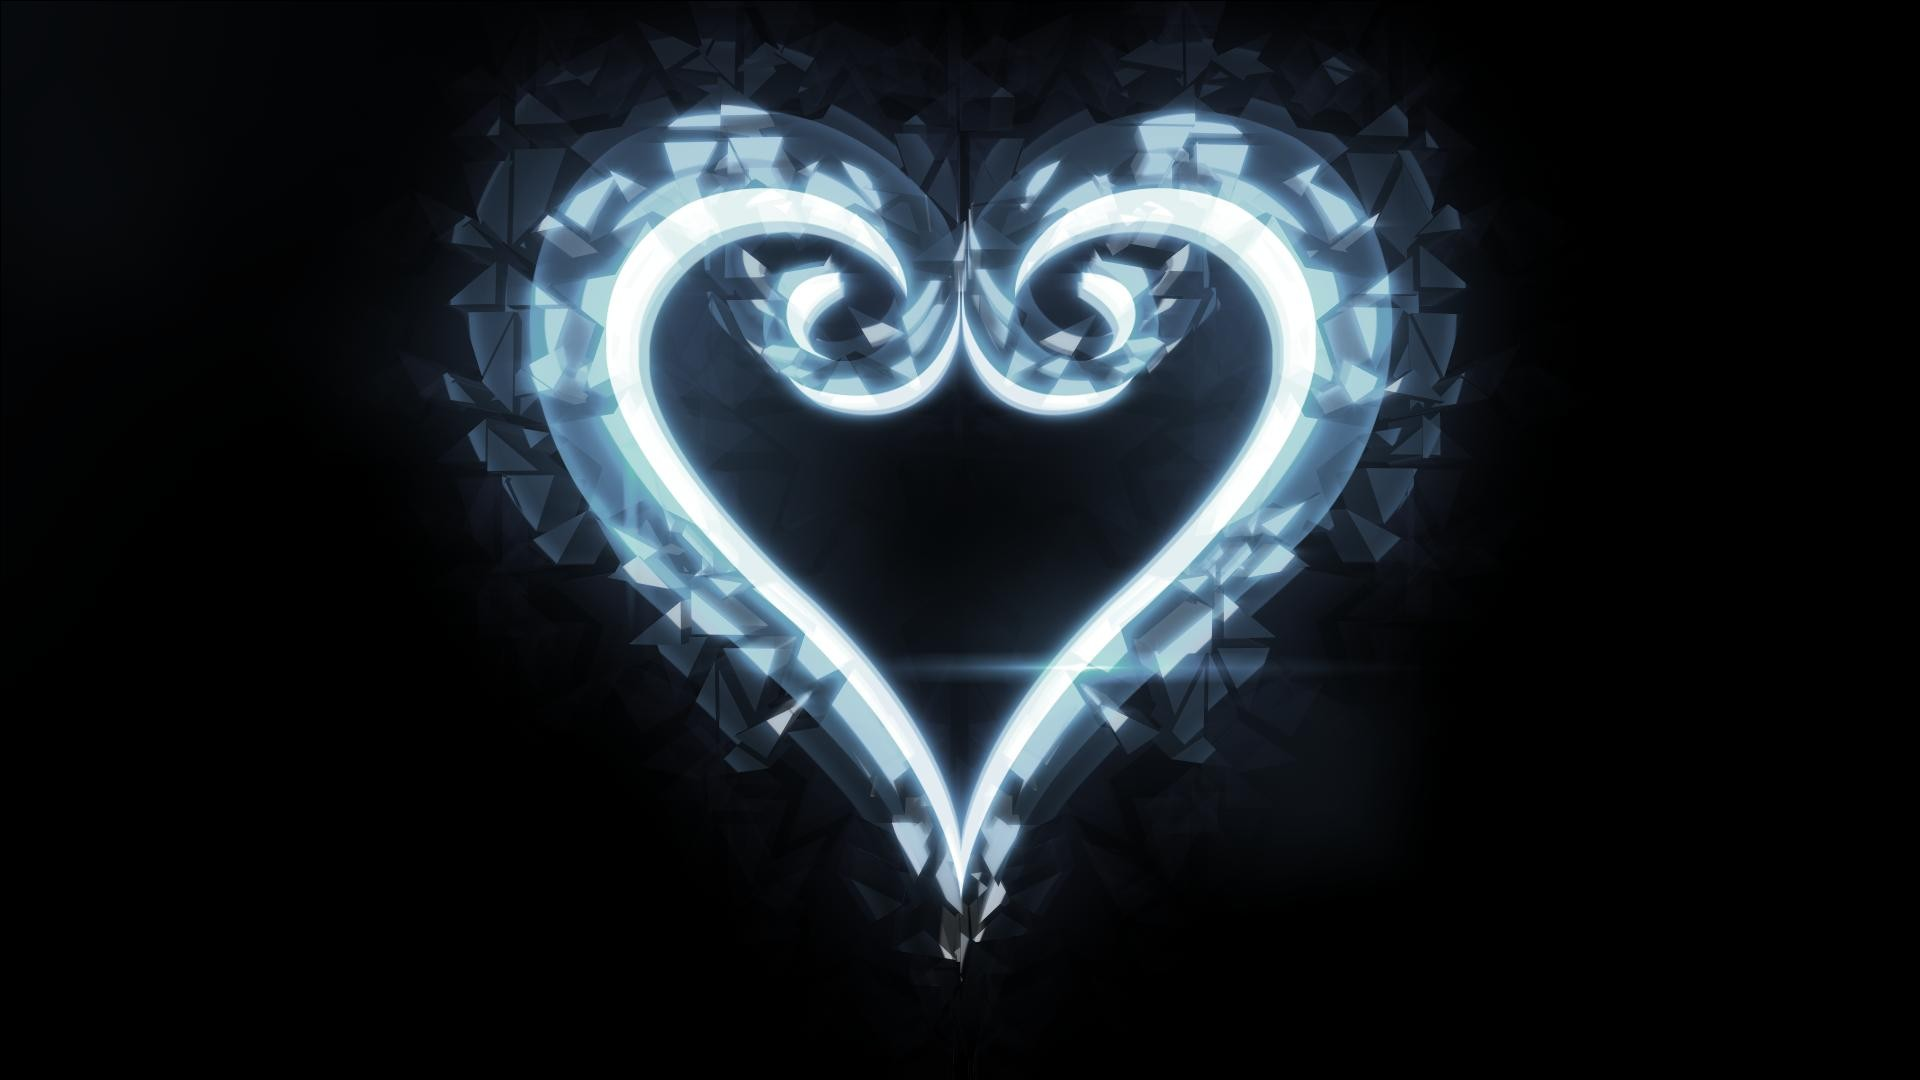 Falling Hearts Background